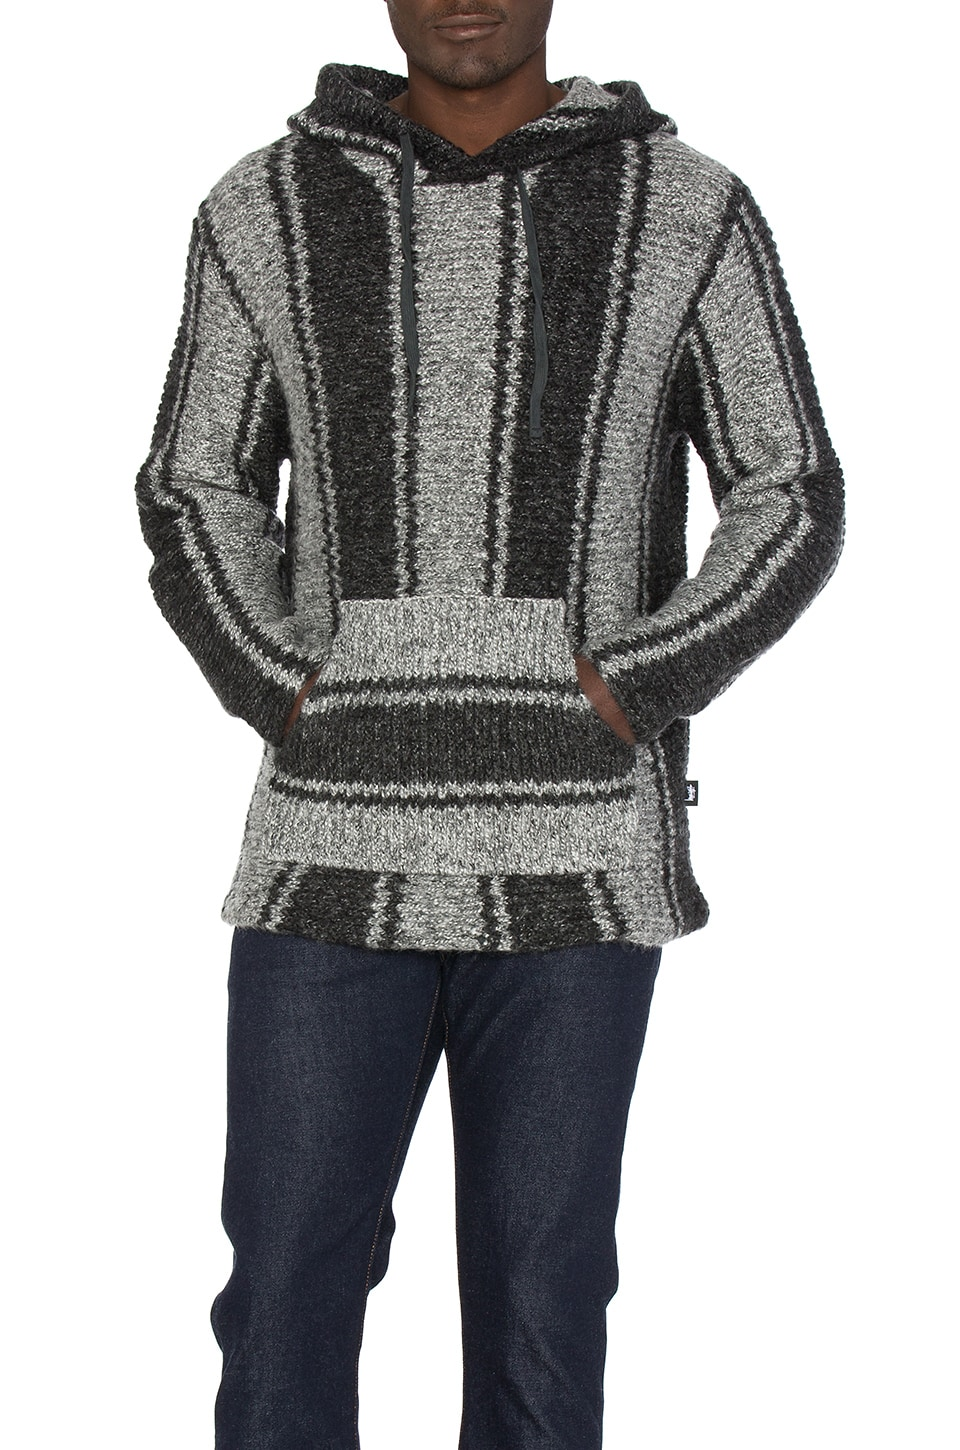 Chunky Knit Drug Rug Sweater by Stussy